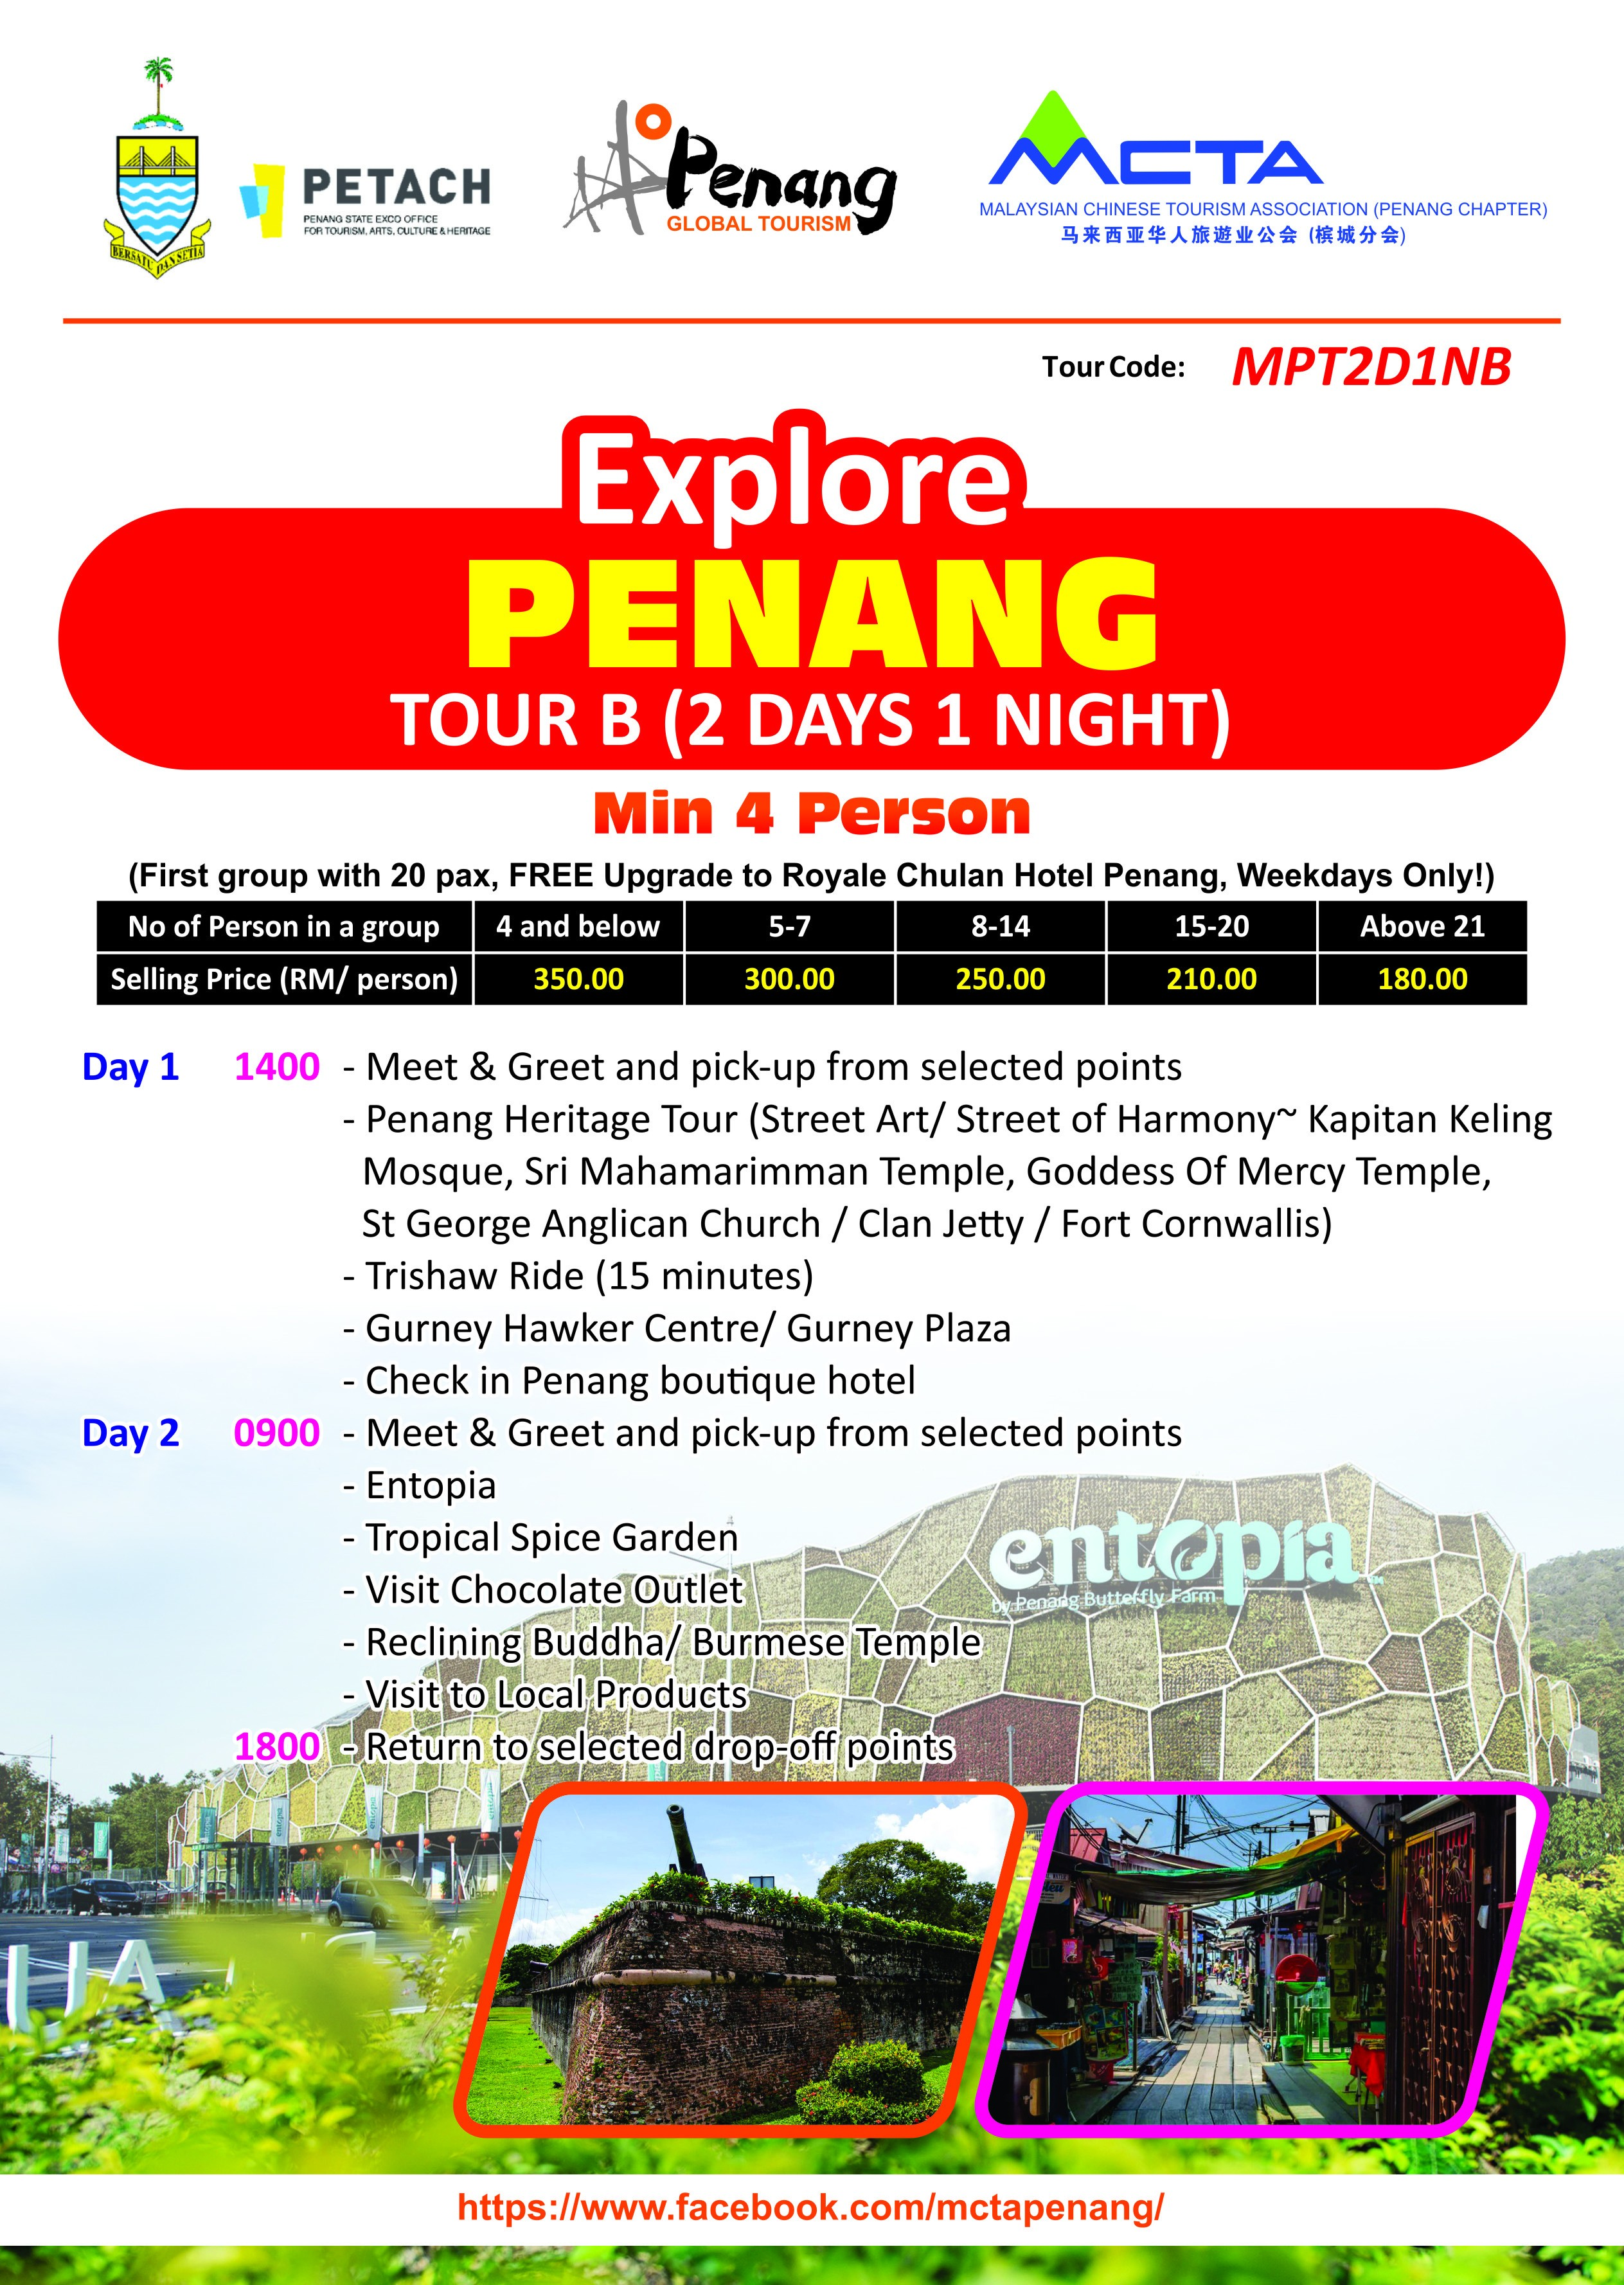 Explore Penang - Tour B (2 Days 1 Night)